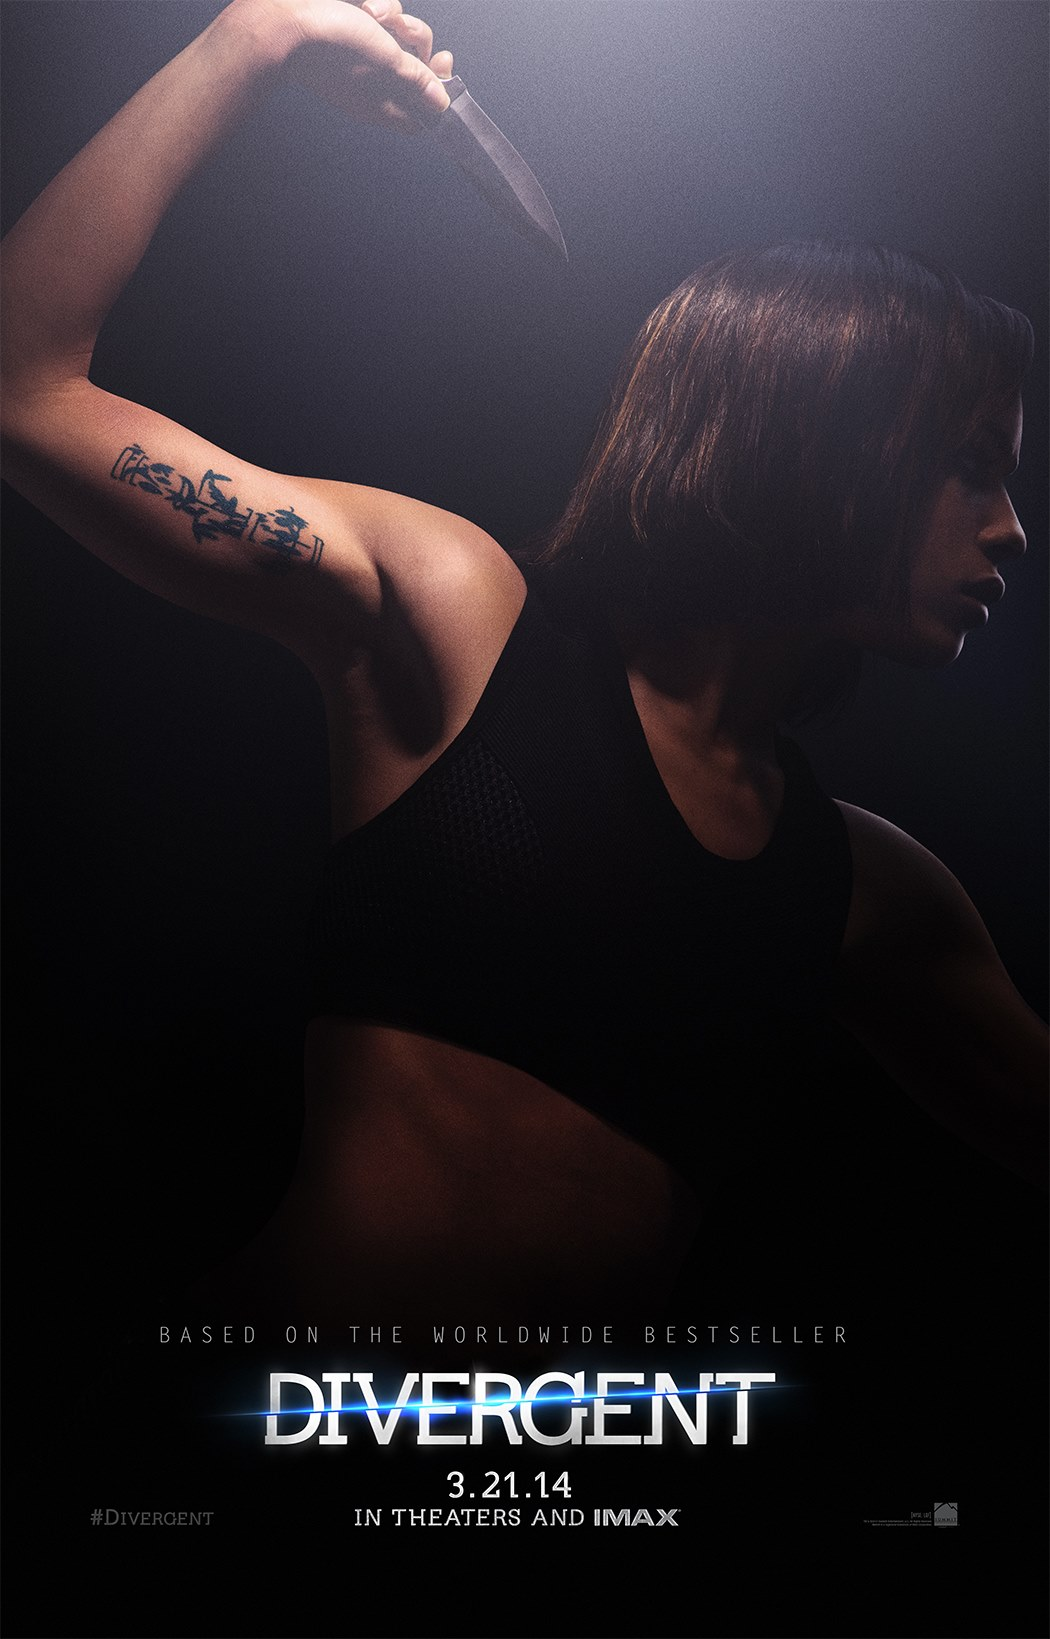 Divergent-Official Poster Banner PROMO CHAR XLG-11NOVEMBRO2013-03